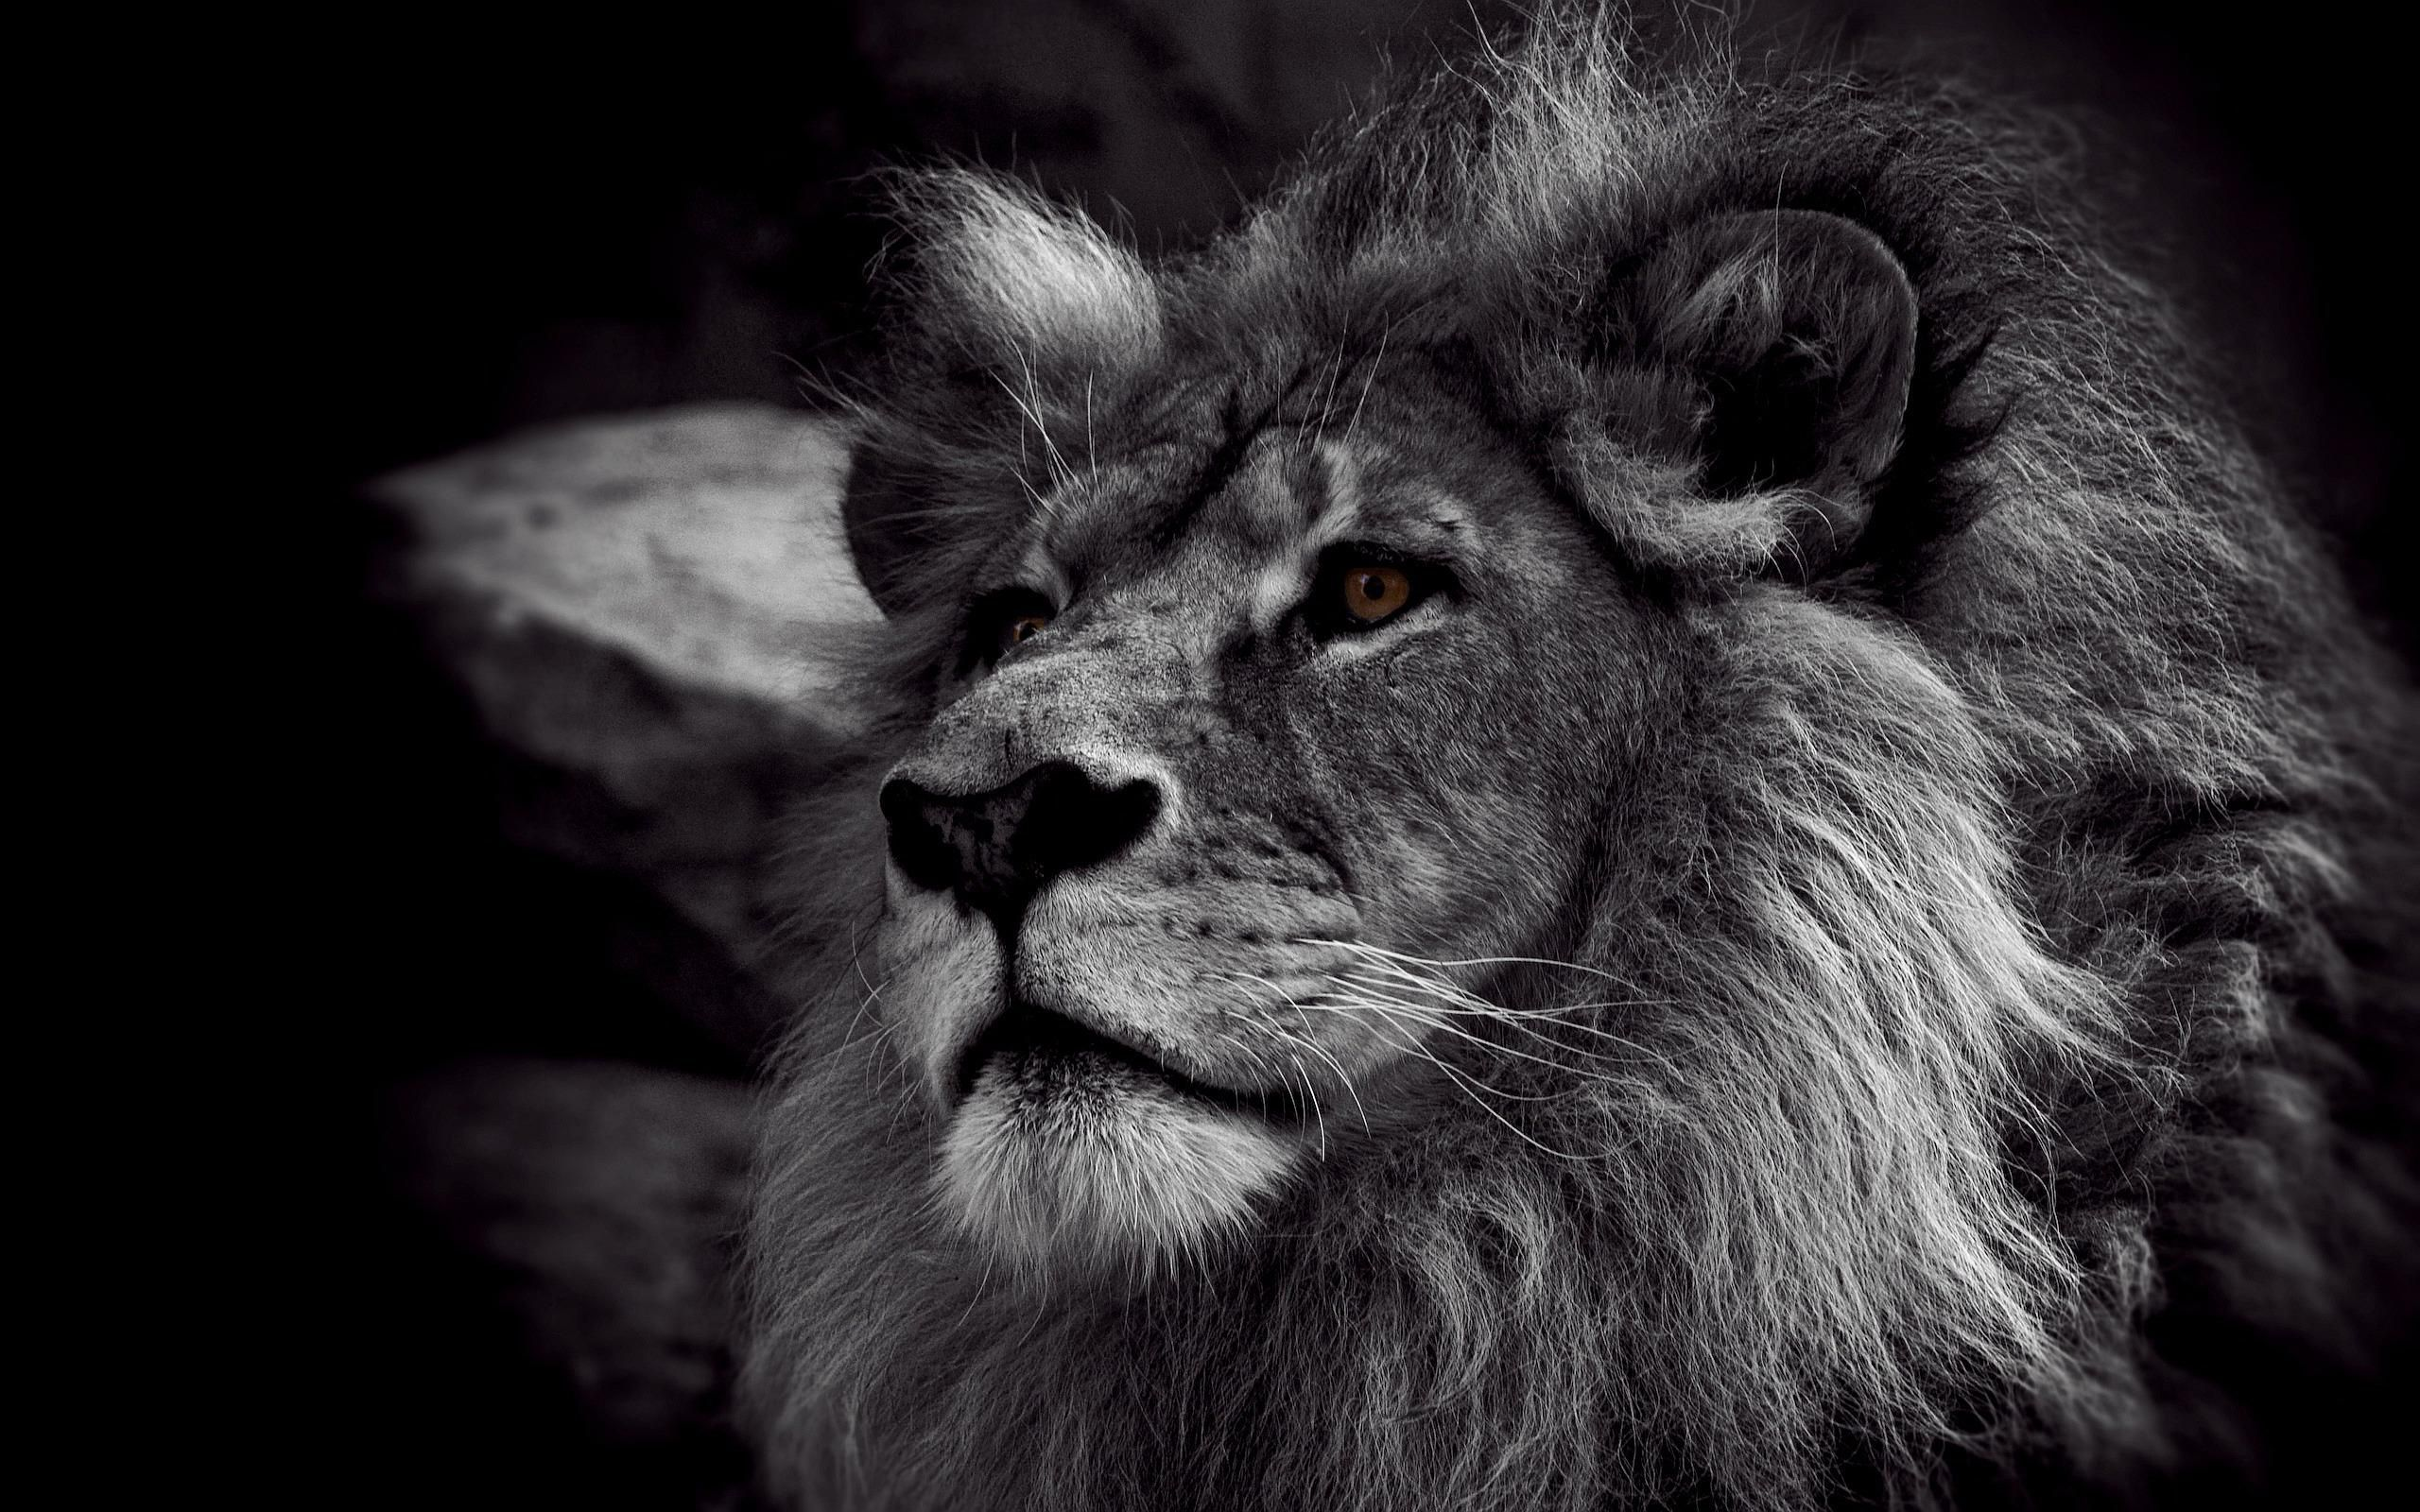 Angry Lion Wallpapers Hd Lion Wallpaper Lion Images Black And White Lion